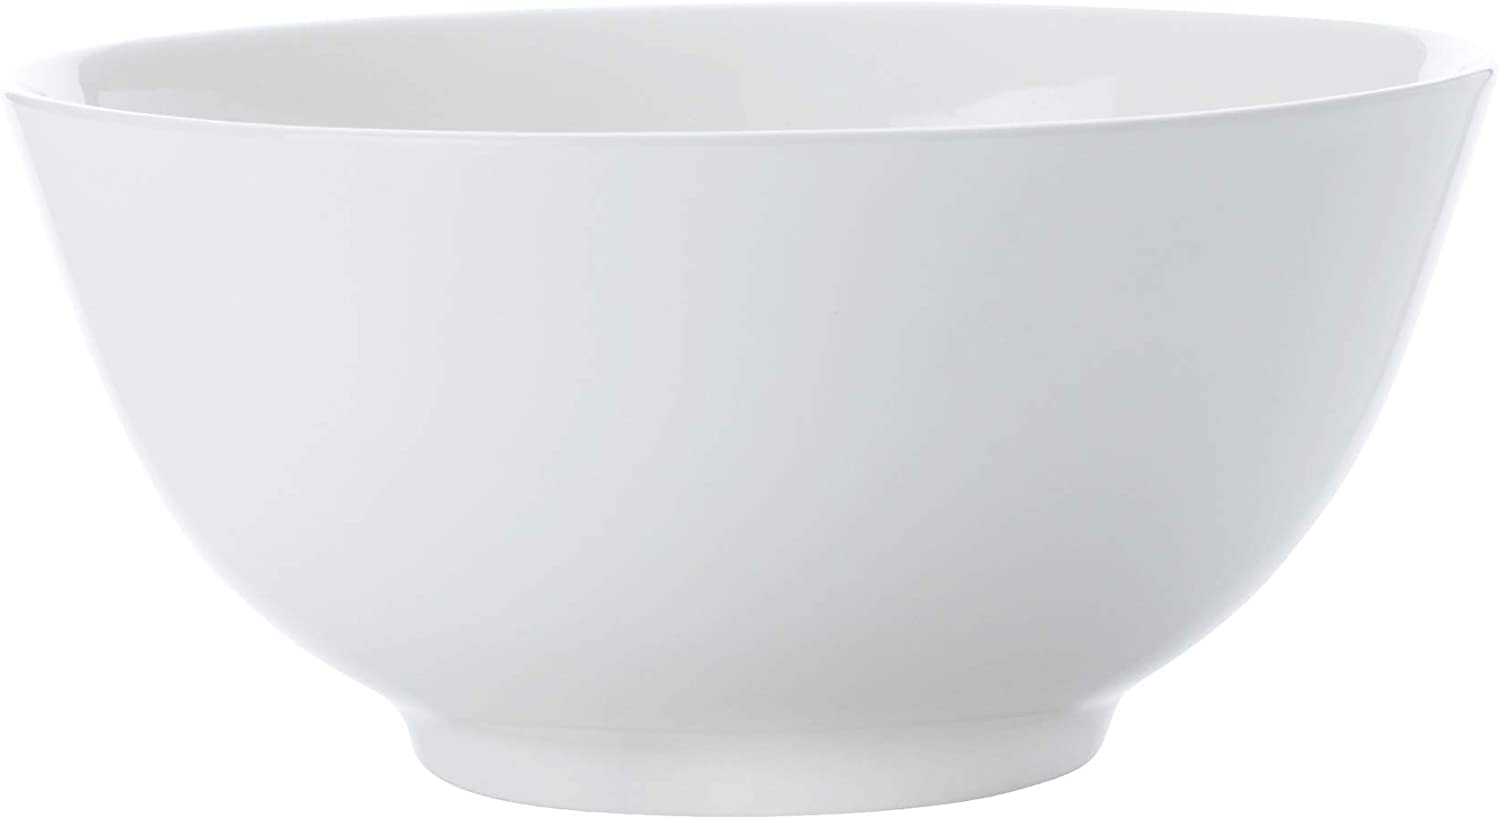 White Set of 4 10 cm Maxwell /& Williams Cashmere Small Bowls for Rice or Dipping Fine Bone China